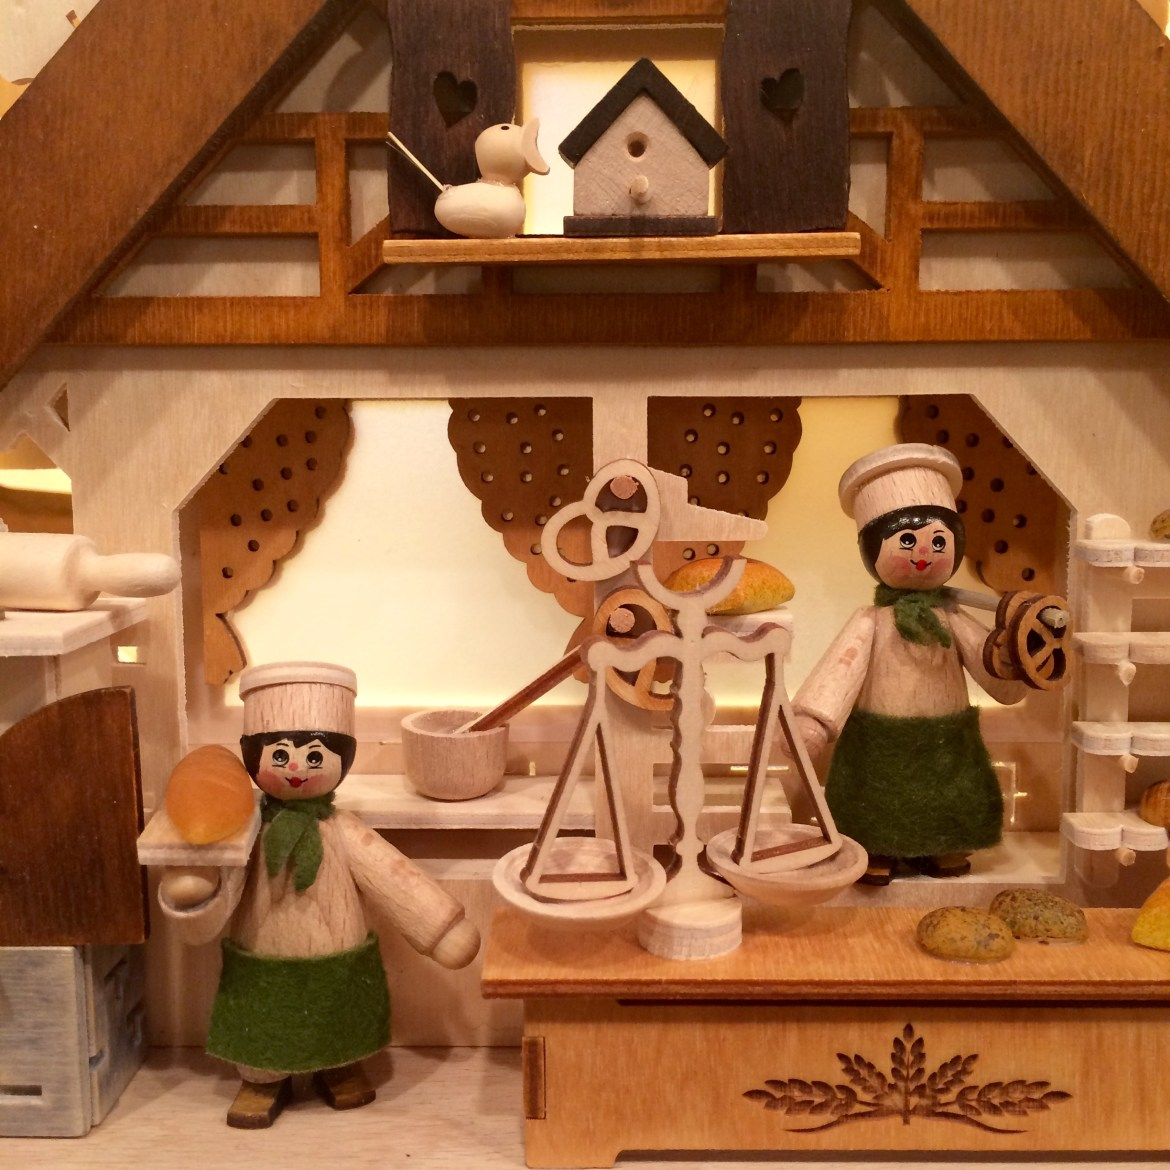 Wooden bakery-themed German Christmas ornaments